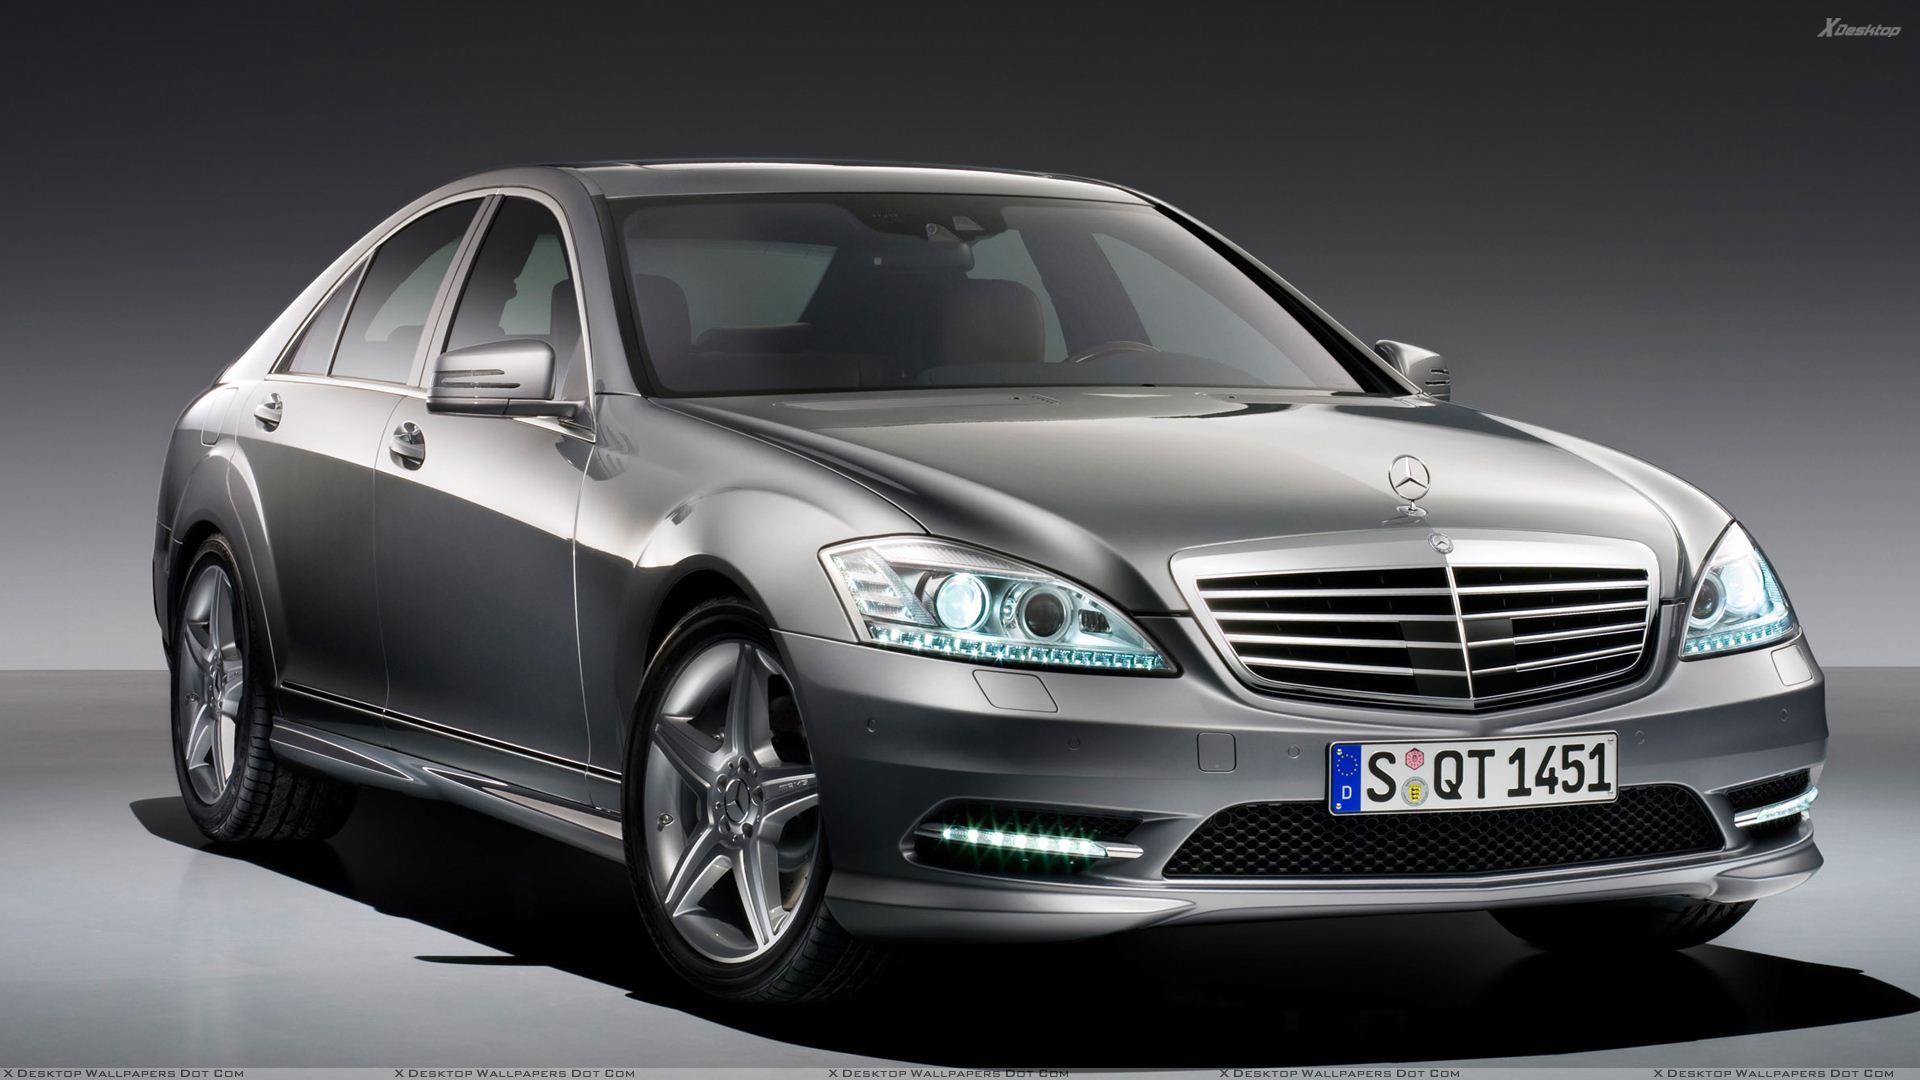 2009 mercedes benz s500 in grey front pose wallpaper for 2009 mercedes benz